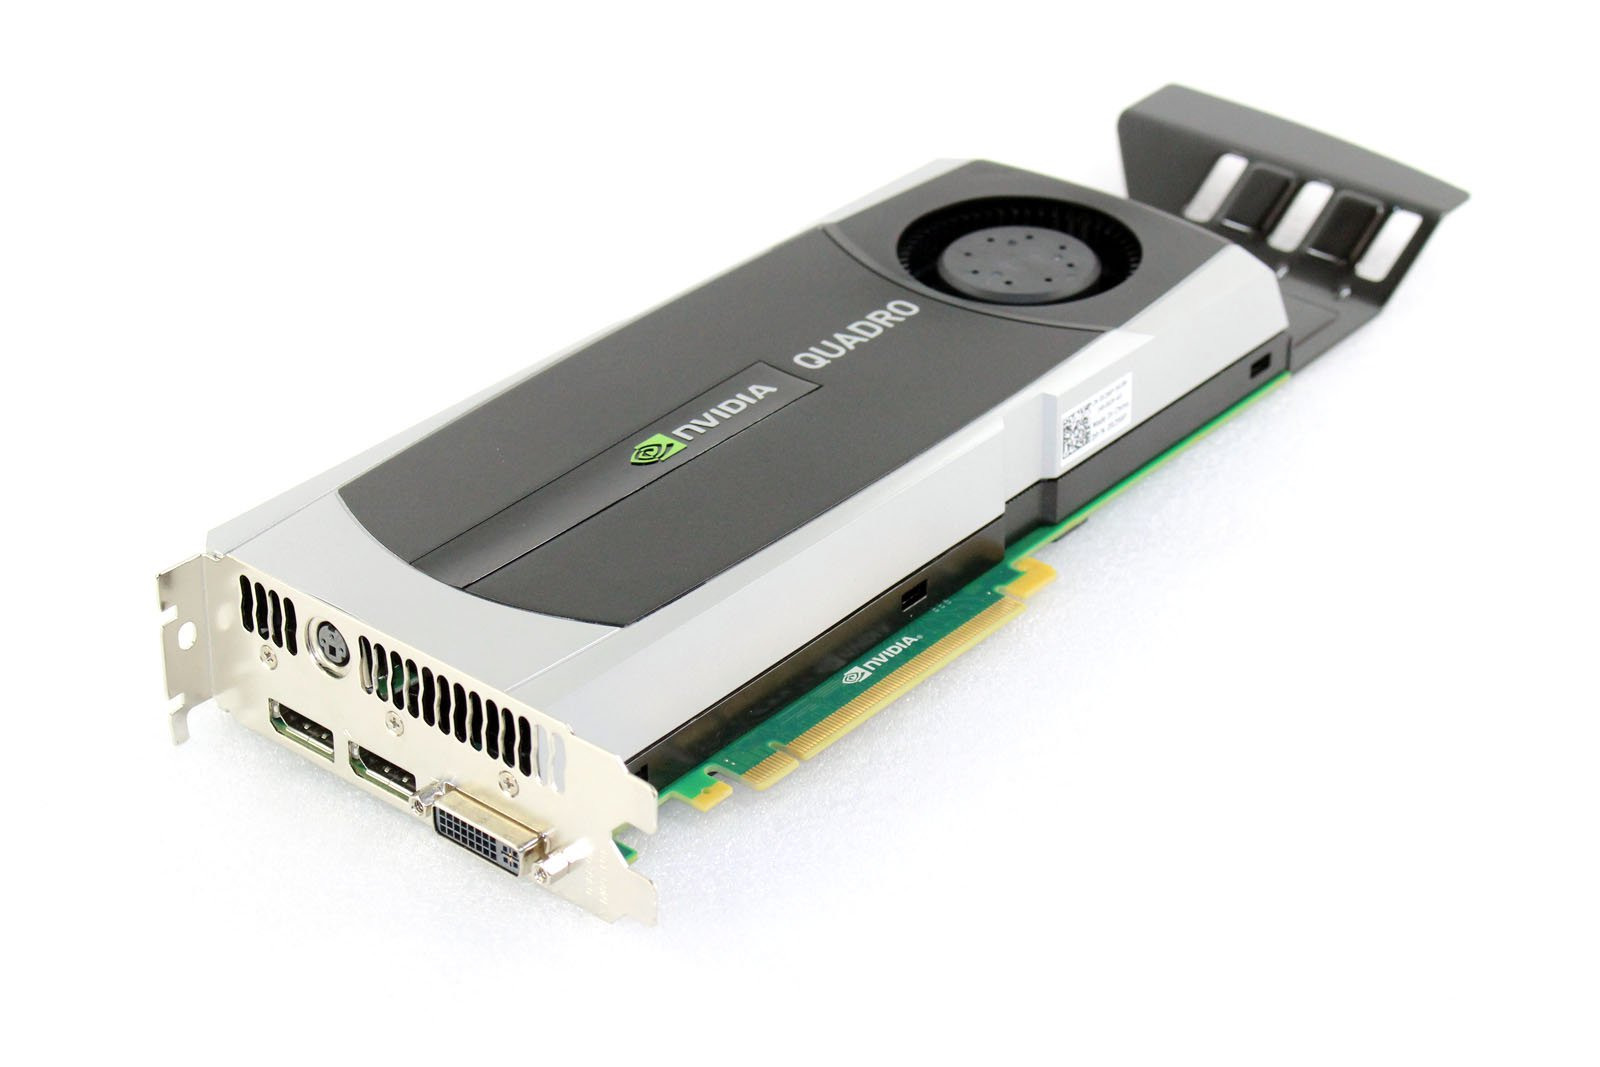 HP 616078-001 NVIDIA Quadro 6000 PCIe graphics card - With 6.0GB GDDR5 GPU memory, max resolution 2560x1600, max power consumption 204Watt, one Dual Link DVI-I and two DisplayPorts connections by NVIDIA (Image #1)